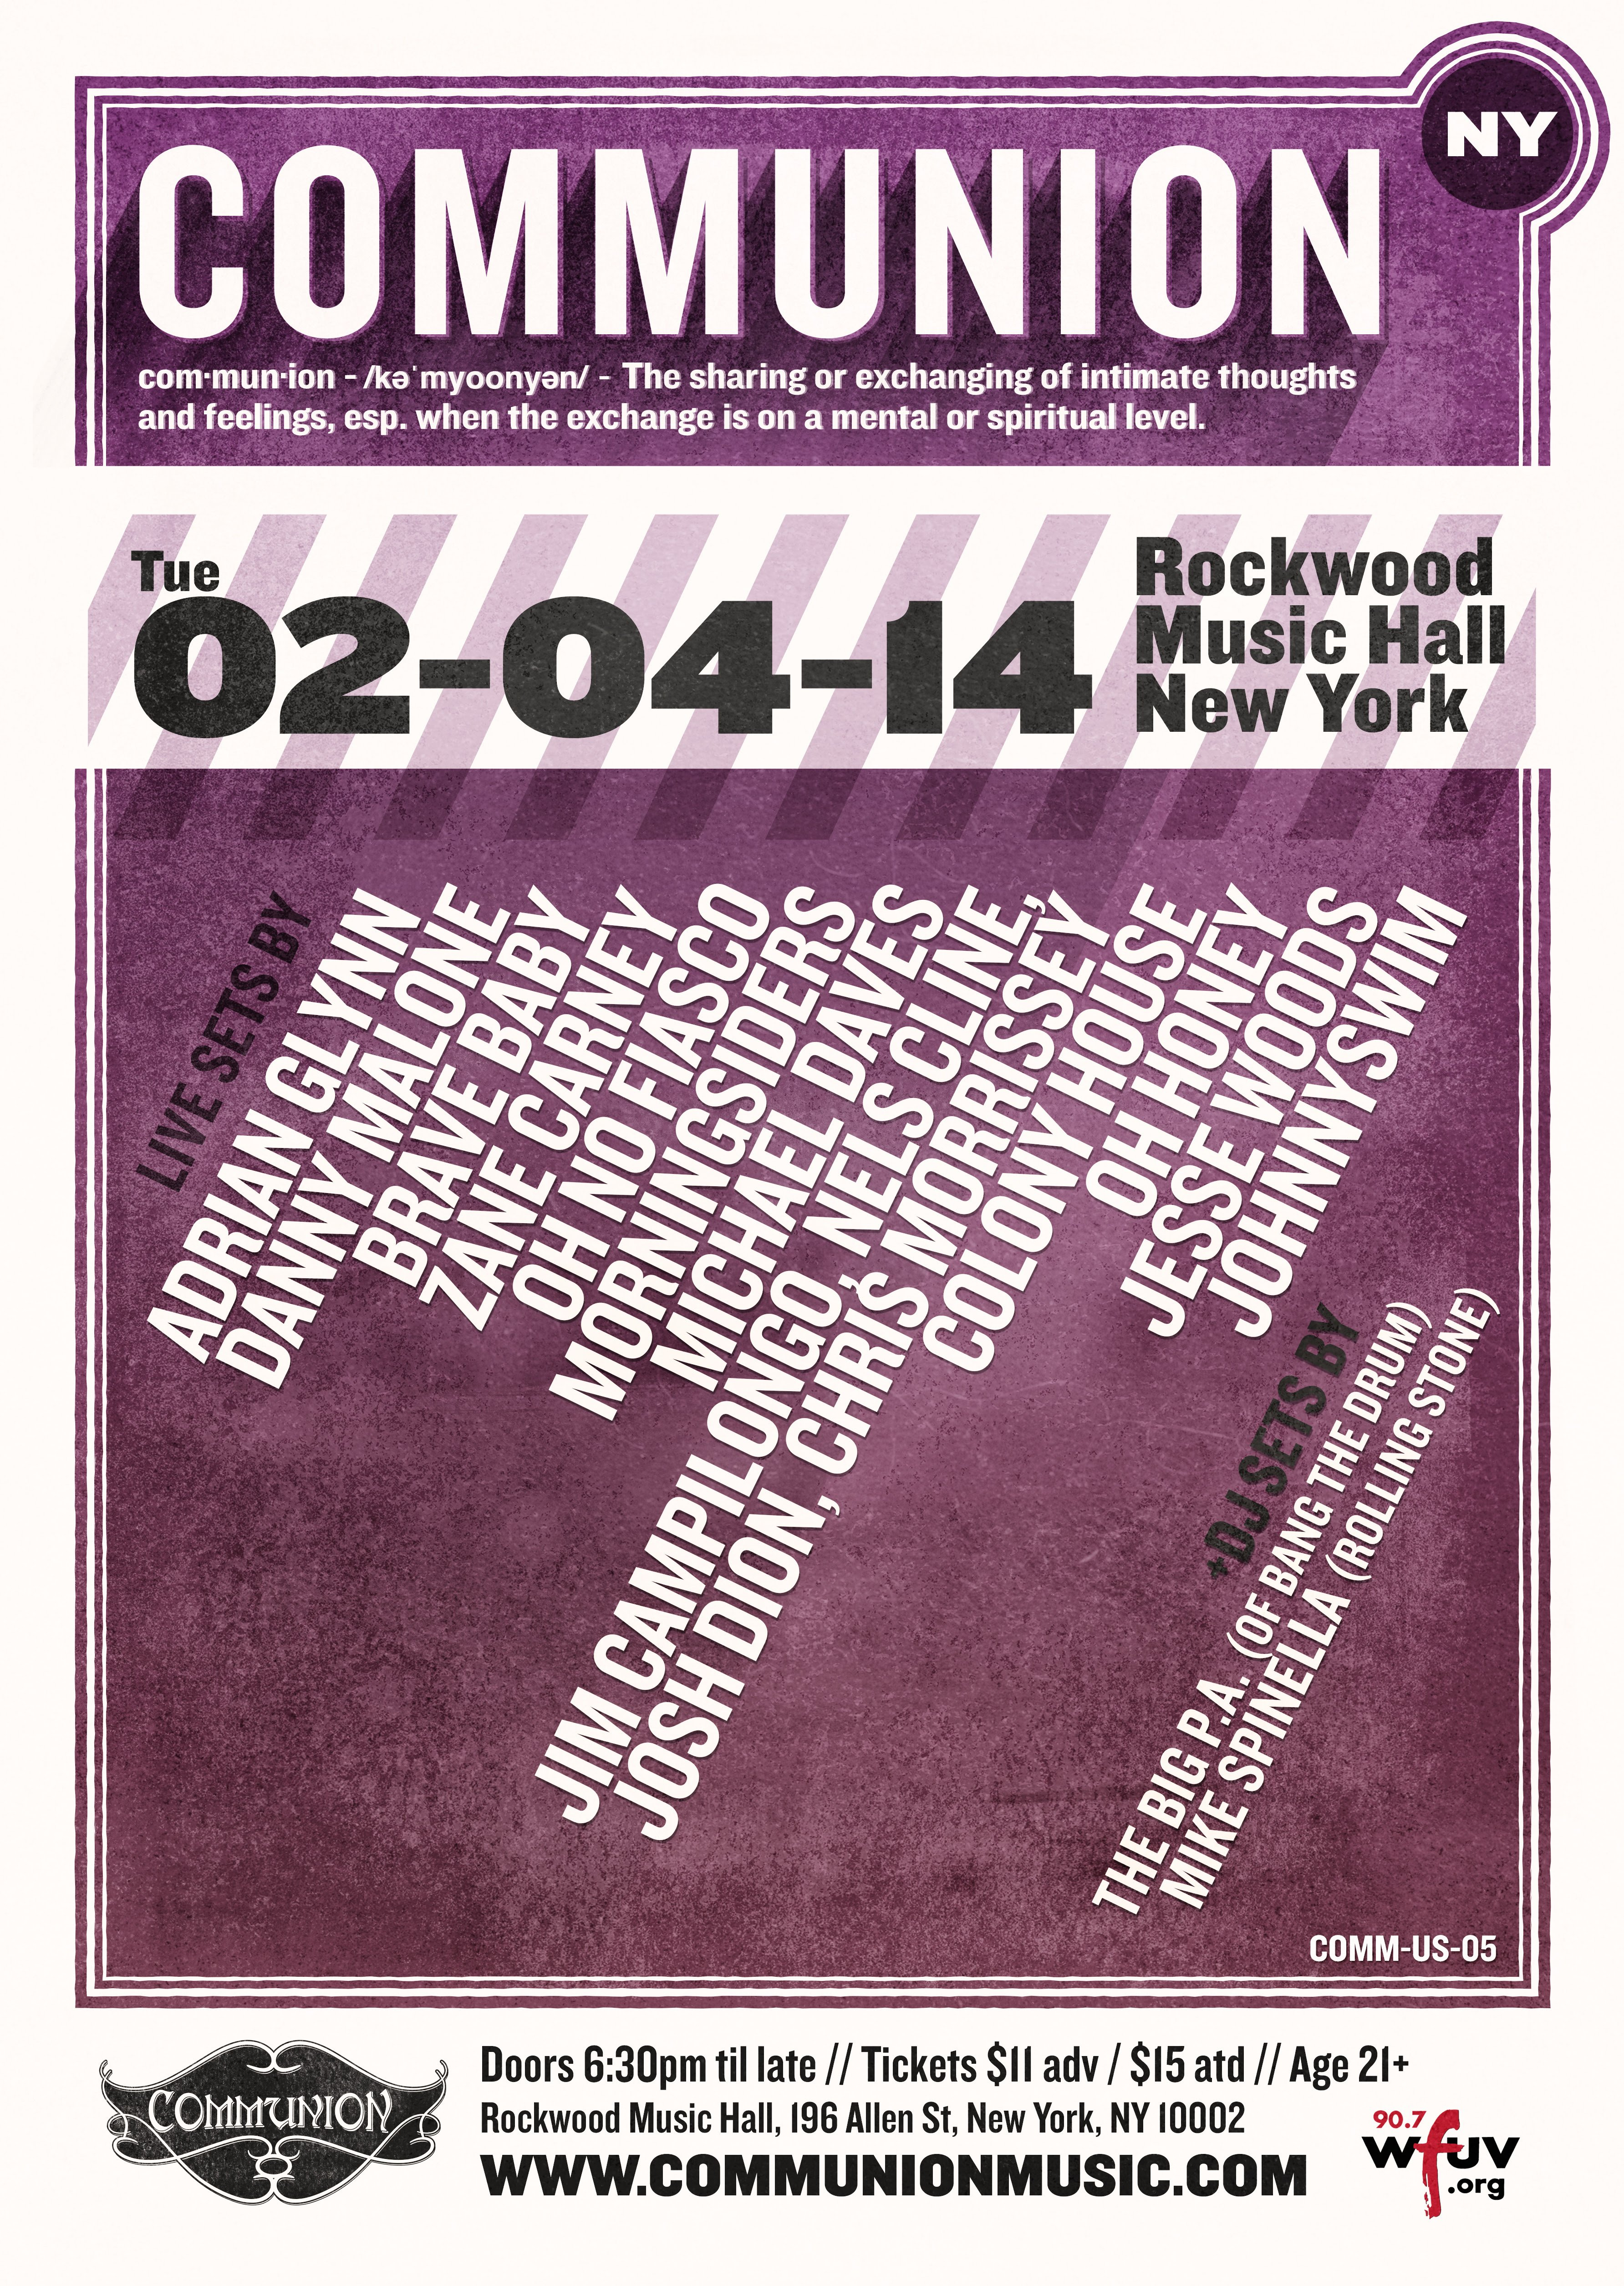 nyc-communion-music-2014-poster-rockwood